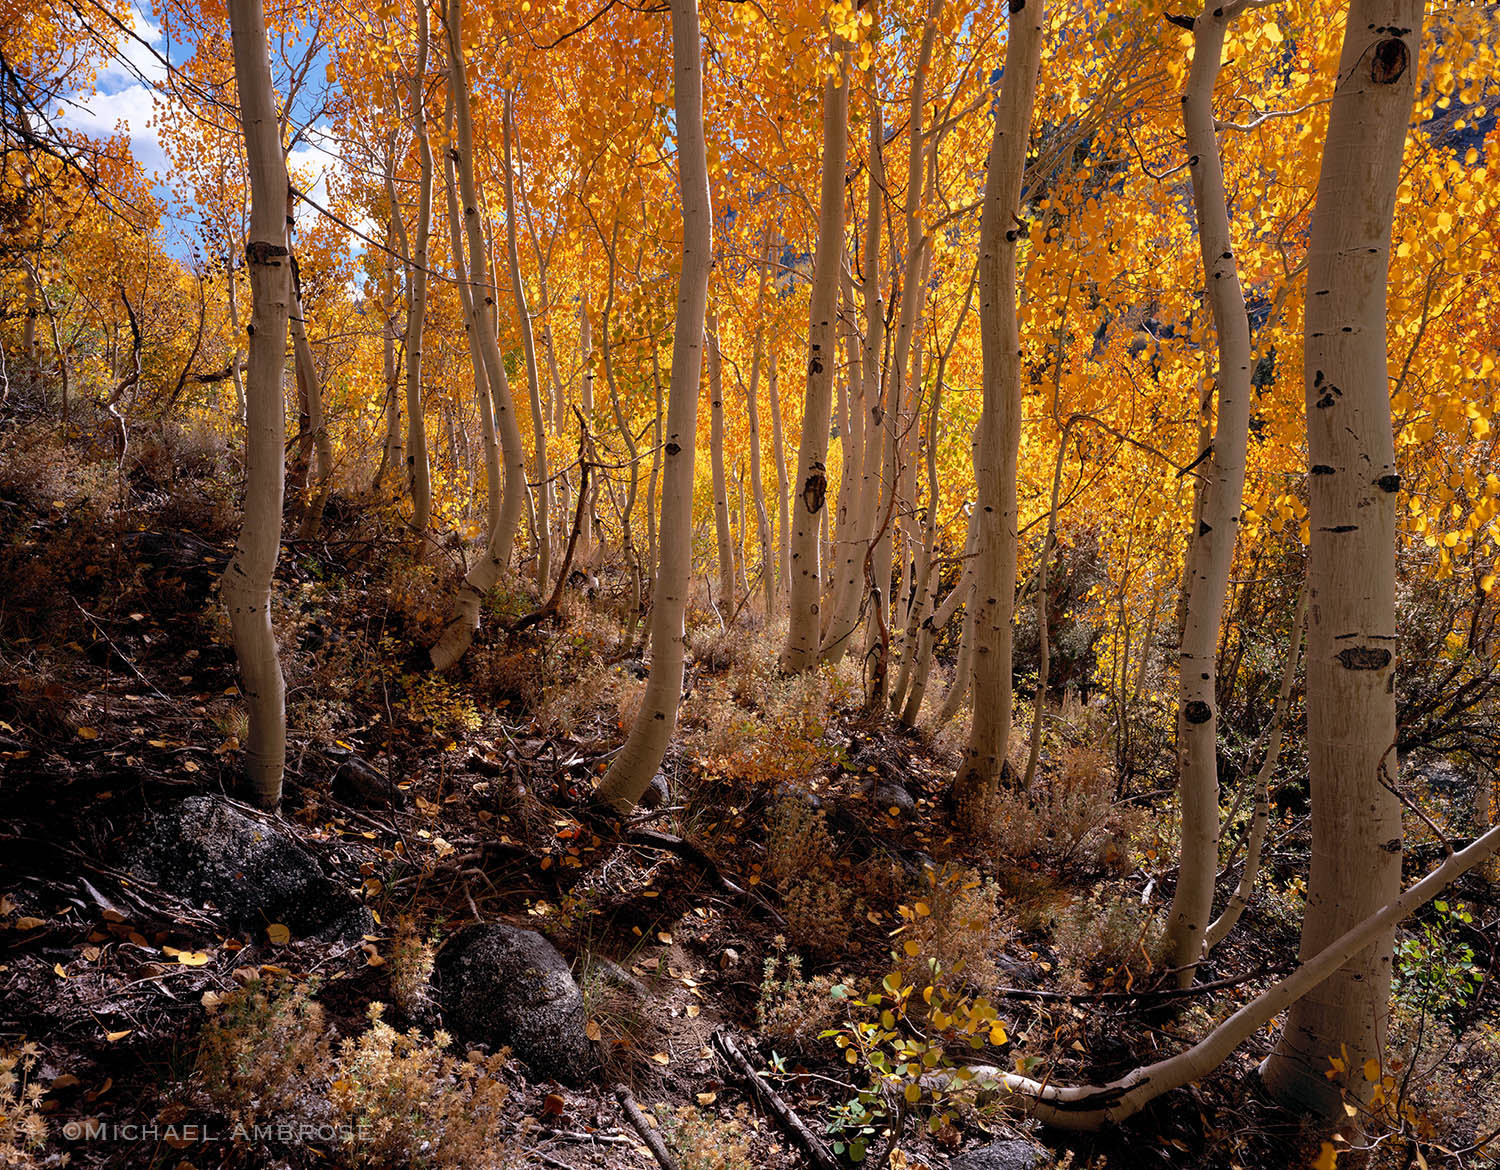 Aspen Trunks, golden with autumn foliage, thrive in the Eastern Sierra of California.